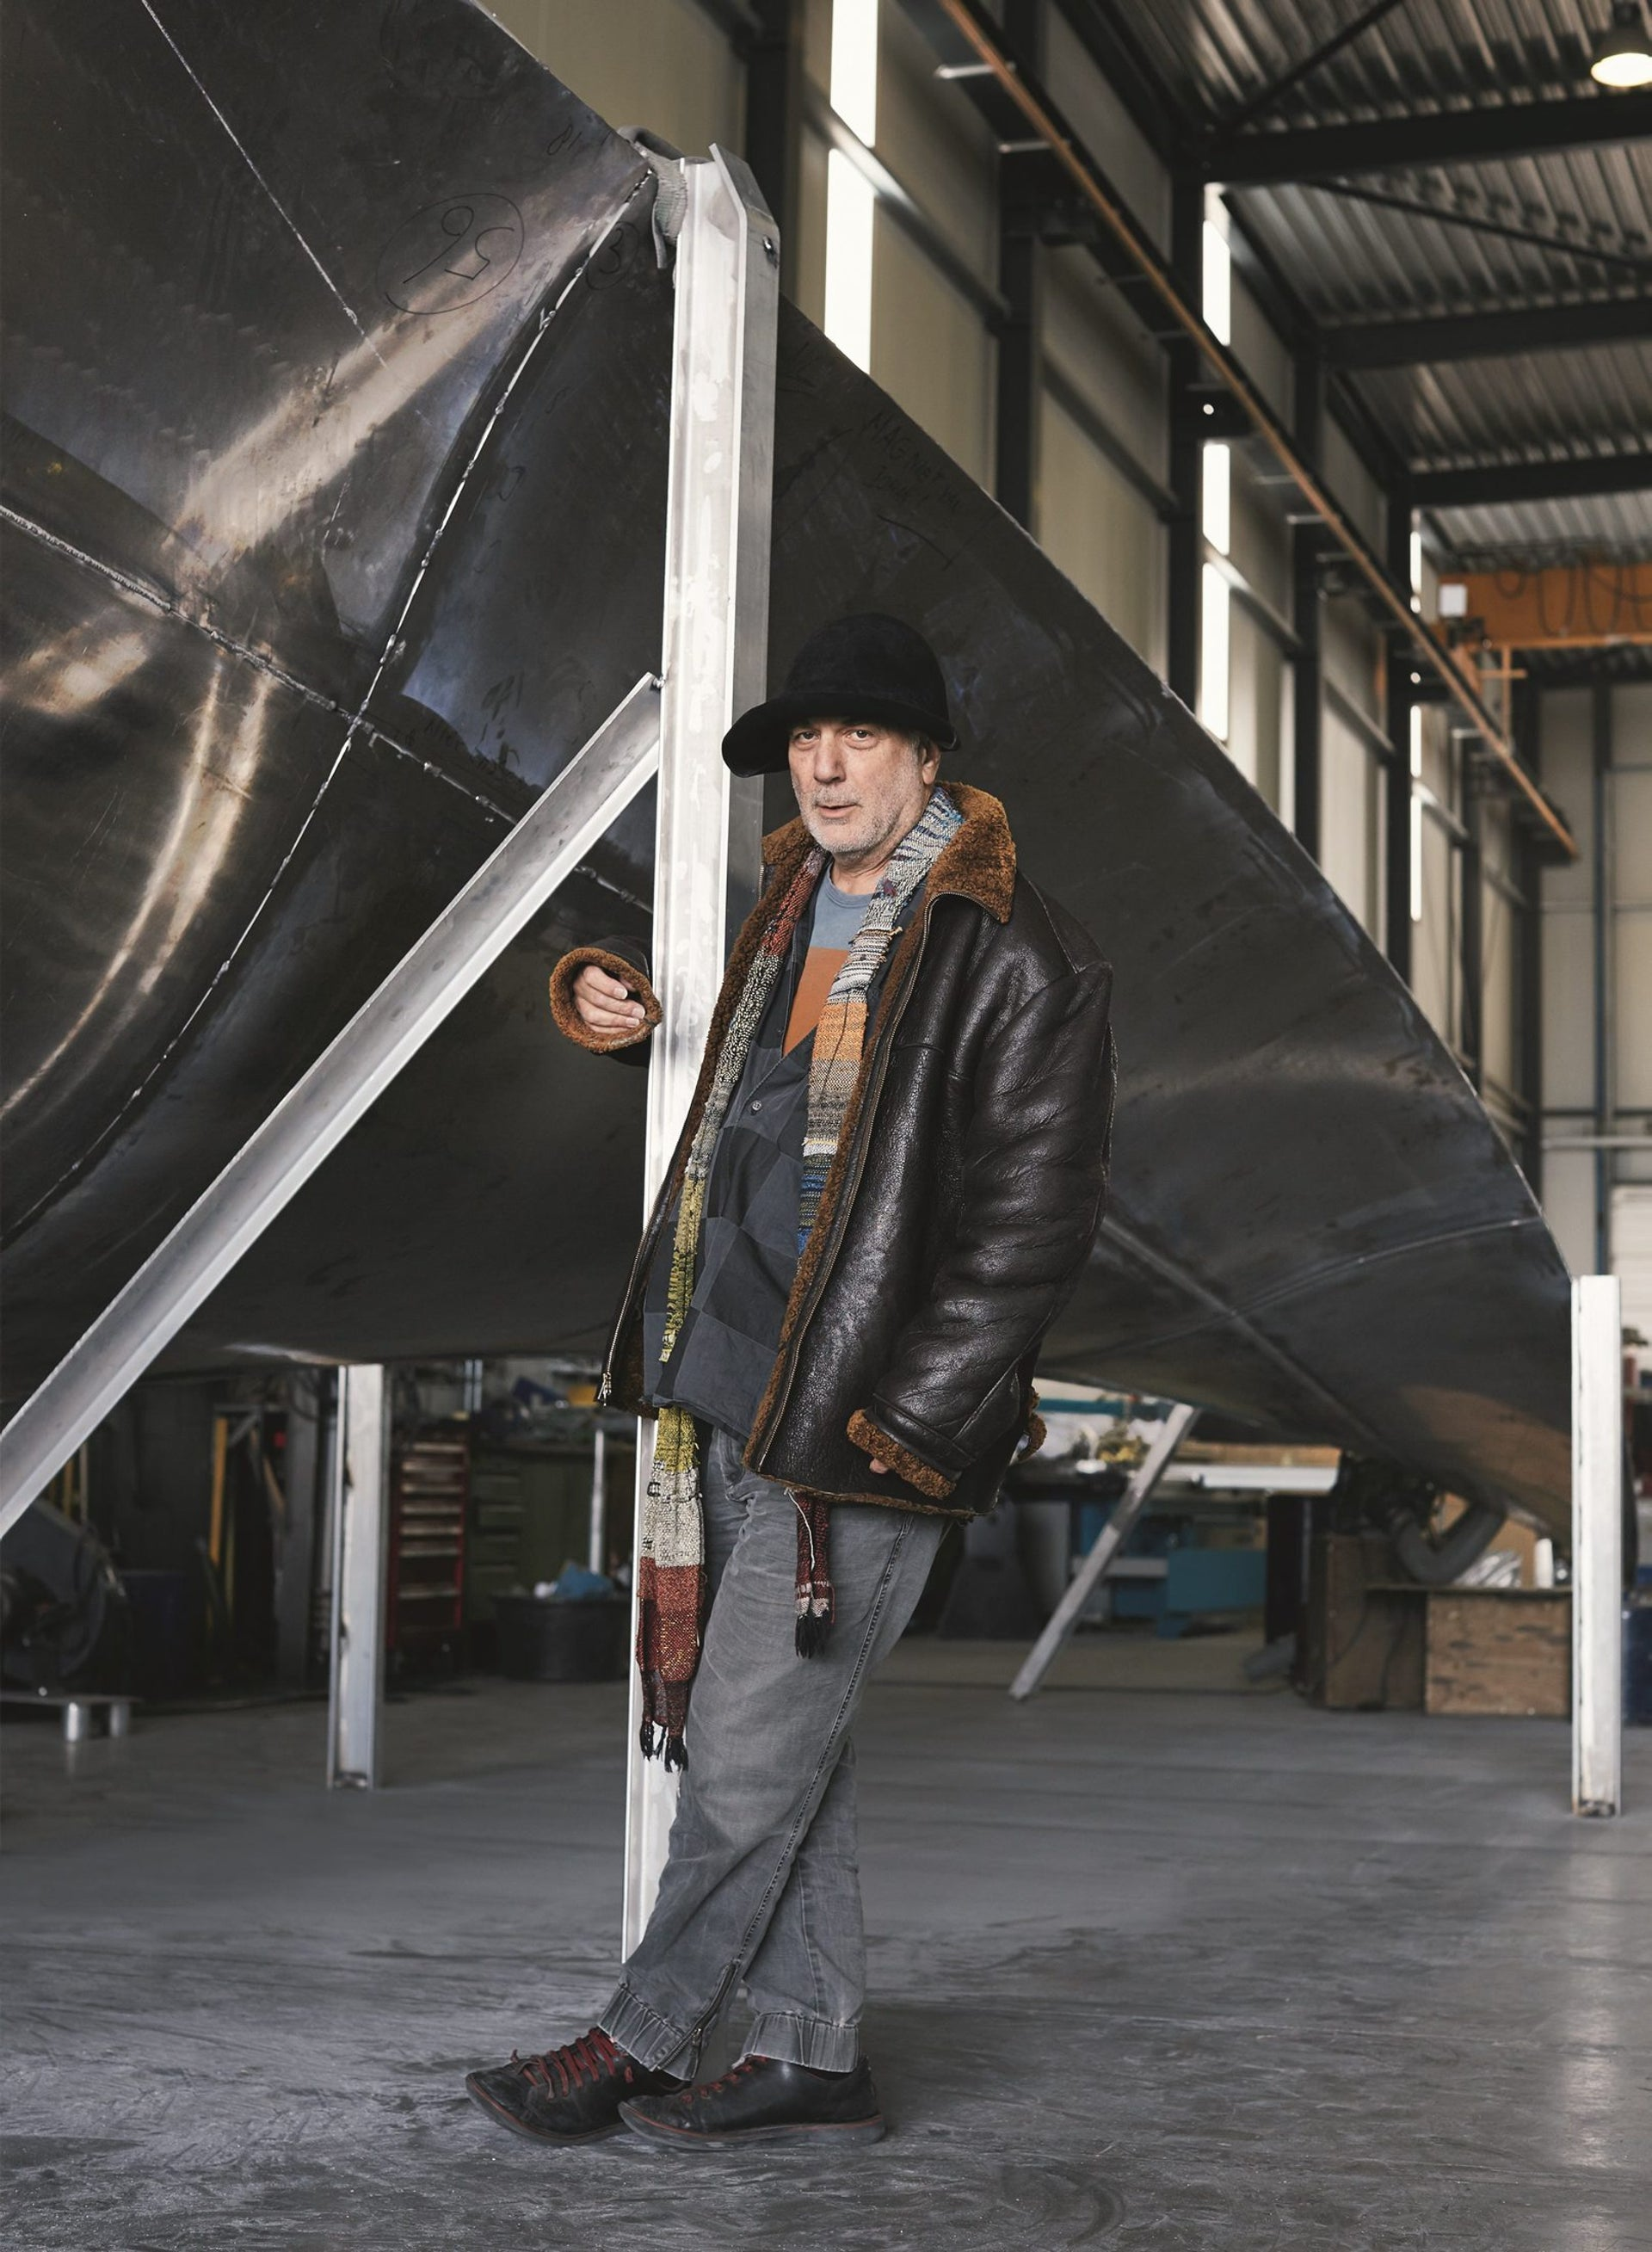 """Ron Arad with his sculpture, """"Thought of Train of Thought,"""" which will be exhibited at St. Pancras International train station in London this summer."""